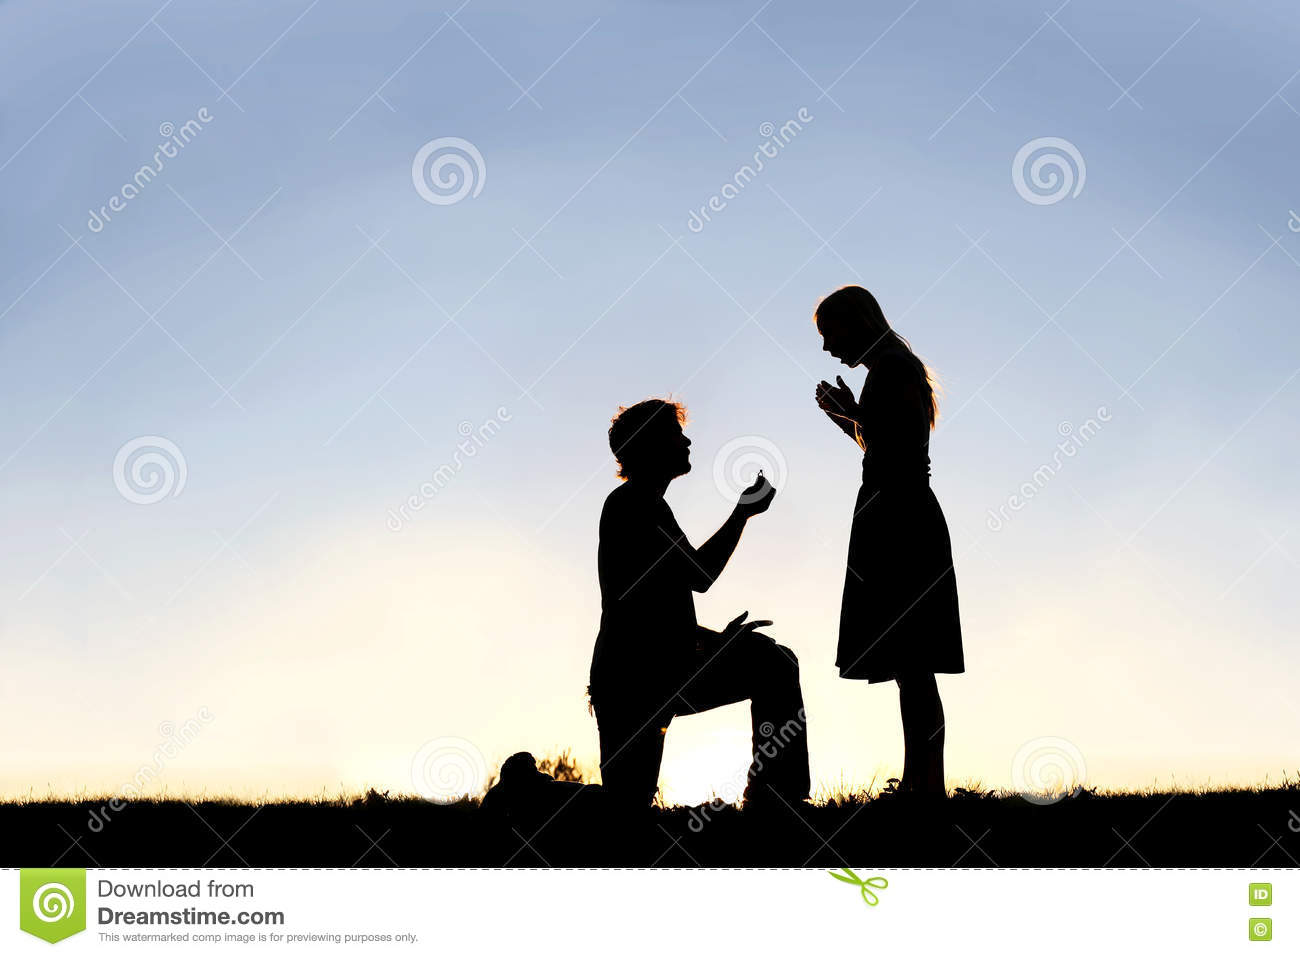 Guy With The Ring On His Knee Makes A Proposal To The Girl